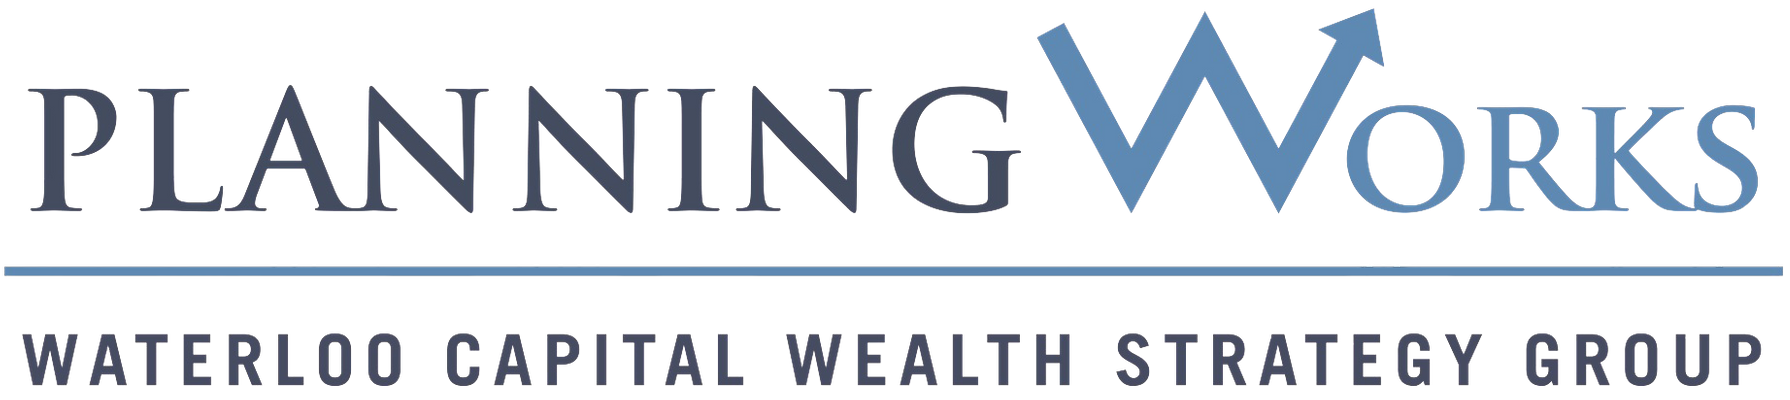 Planning Works | Waterloo Capital Wealth Strategy Group